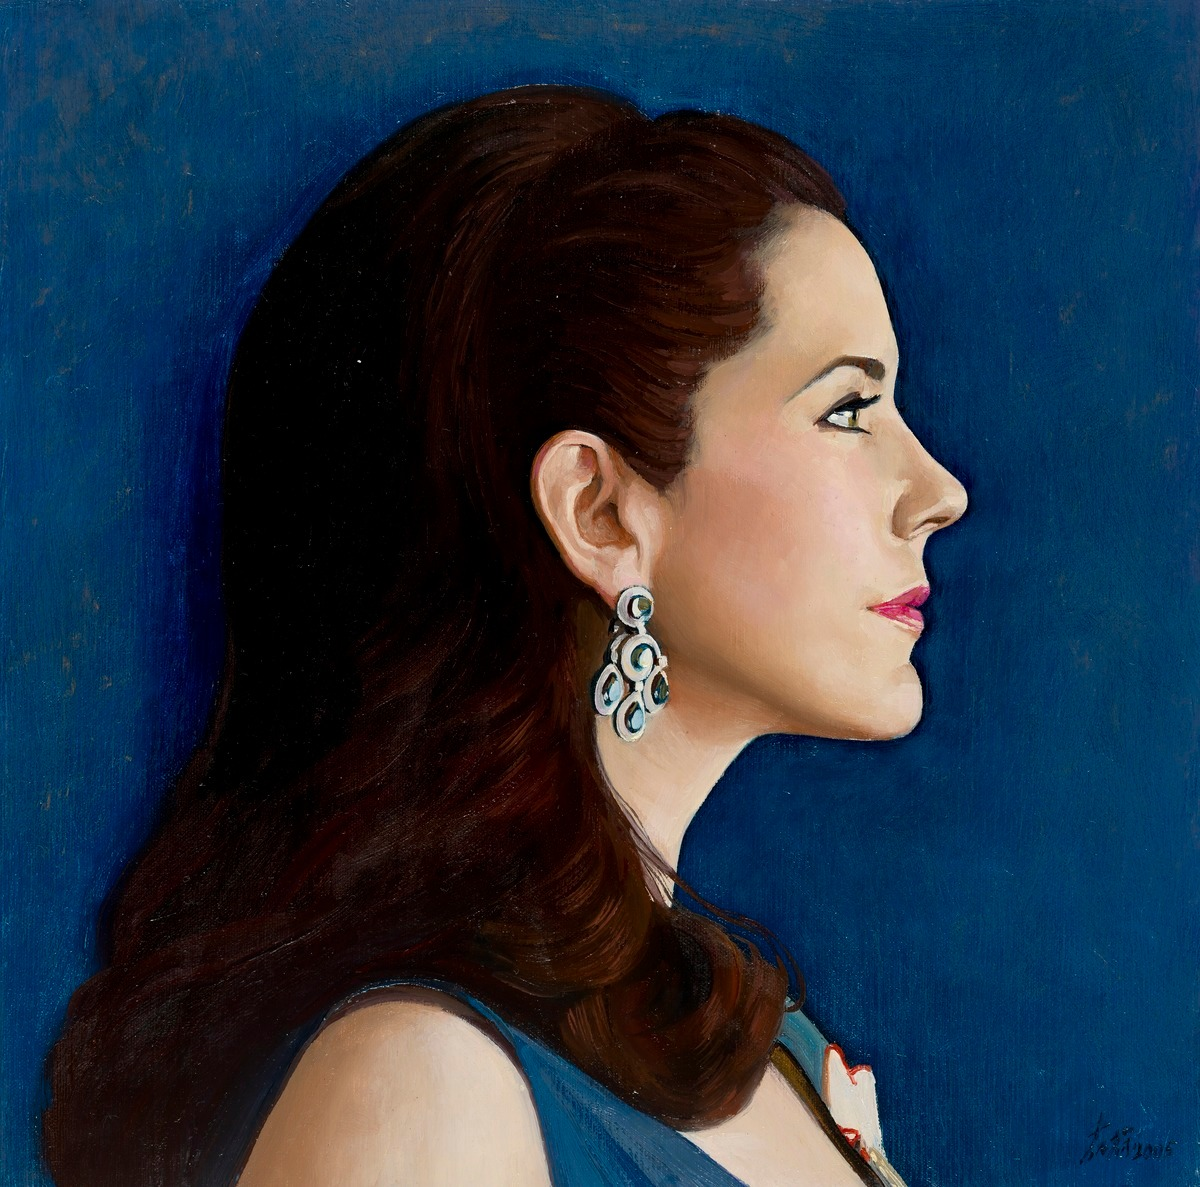 Study for commissioned portrait of HRH Crown Princess Mary of Denmark (profile head study), 2005 by Jiawei Shen